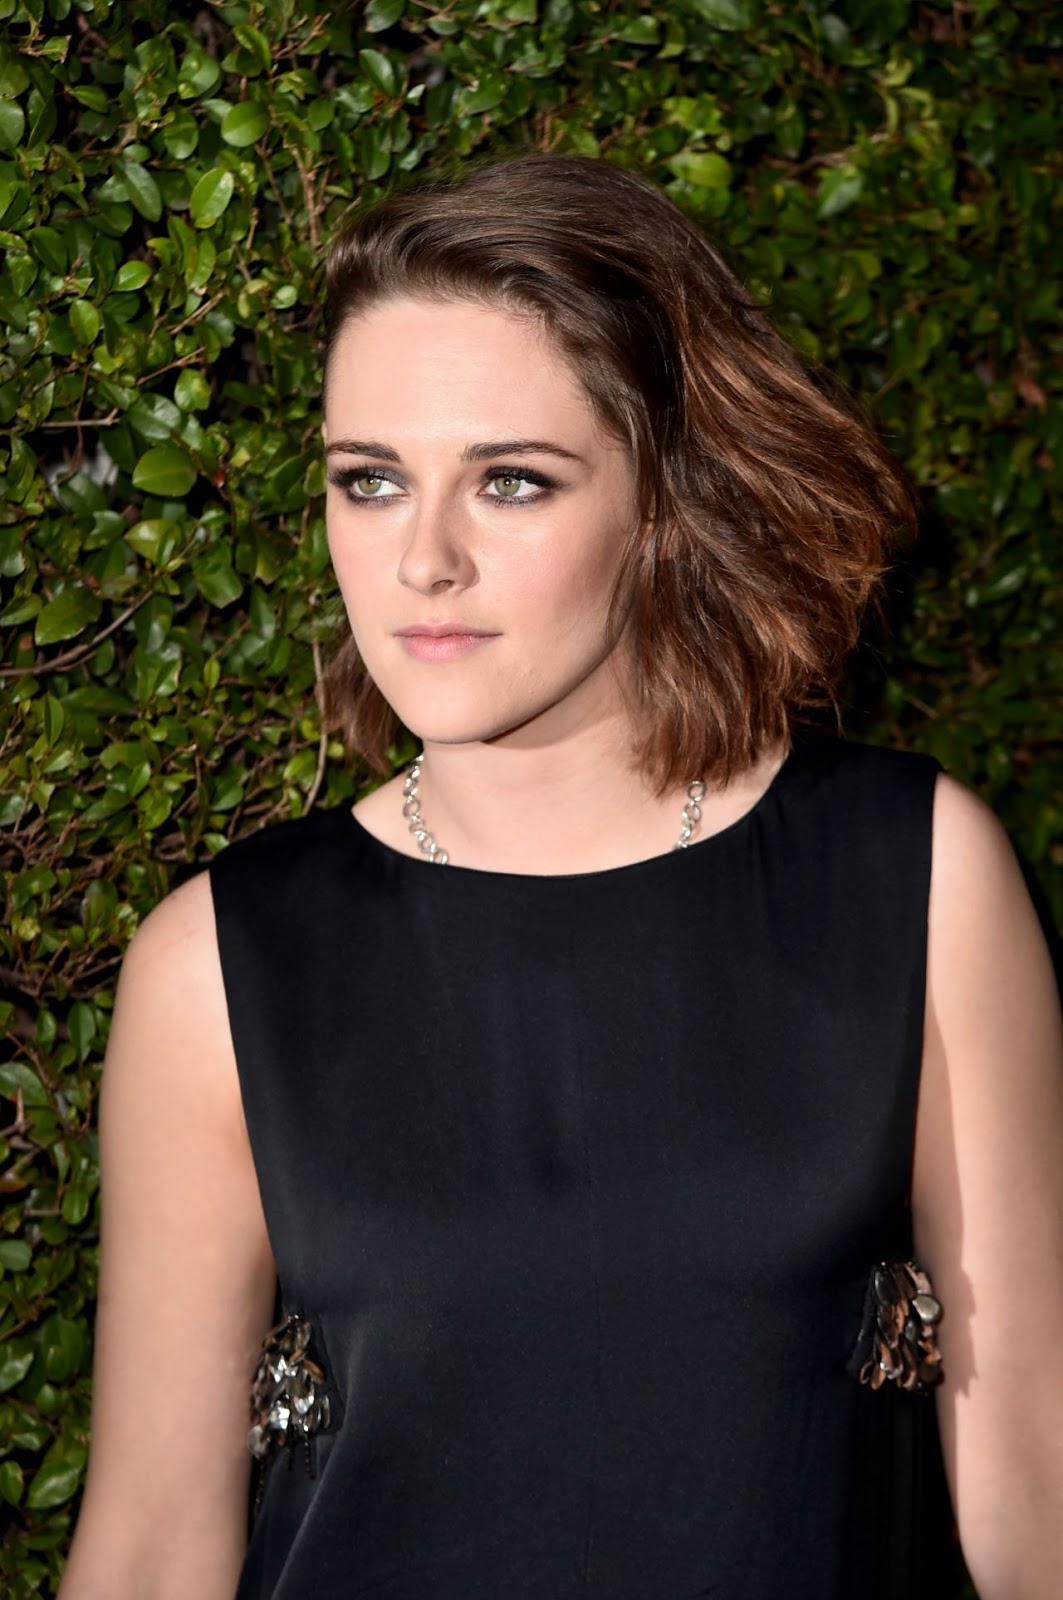 Kristen Stewart – Inaugural Image Maker Awards Hosted by Marie Claire in Los Angeles